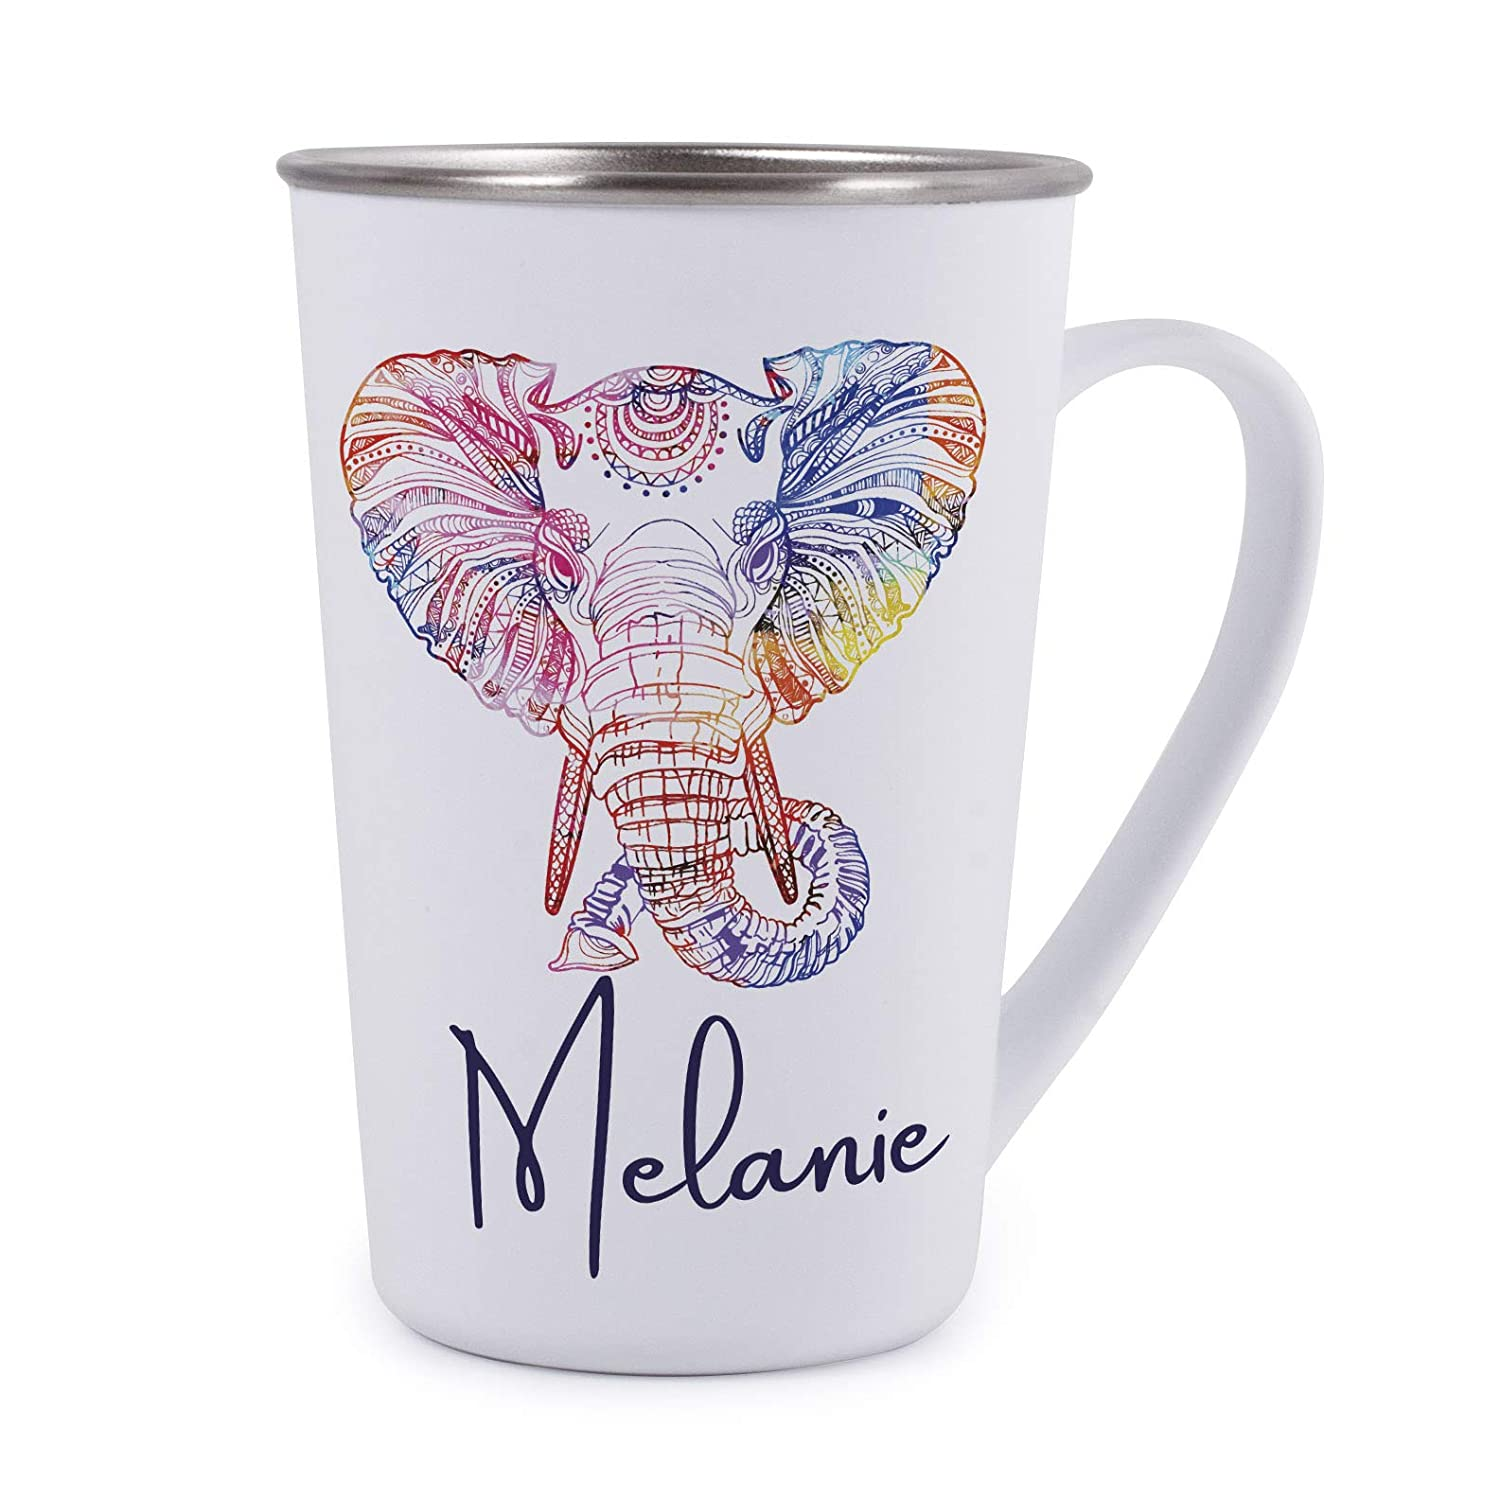 Personalized Gifts Colorful Elephant Coffee Mug - 17oz Stainless Steel Tumbler Coffee Mug -Birthday Gifts, Christmas Gifts, Mother's Day Gifts, Father's Day Gifts, Funny Mug for Kids